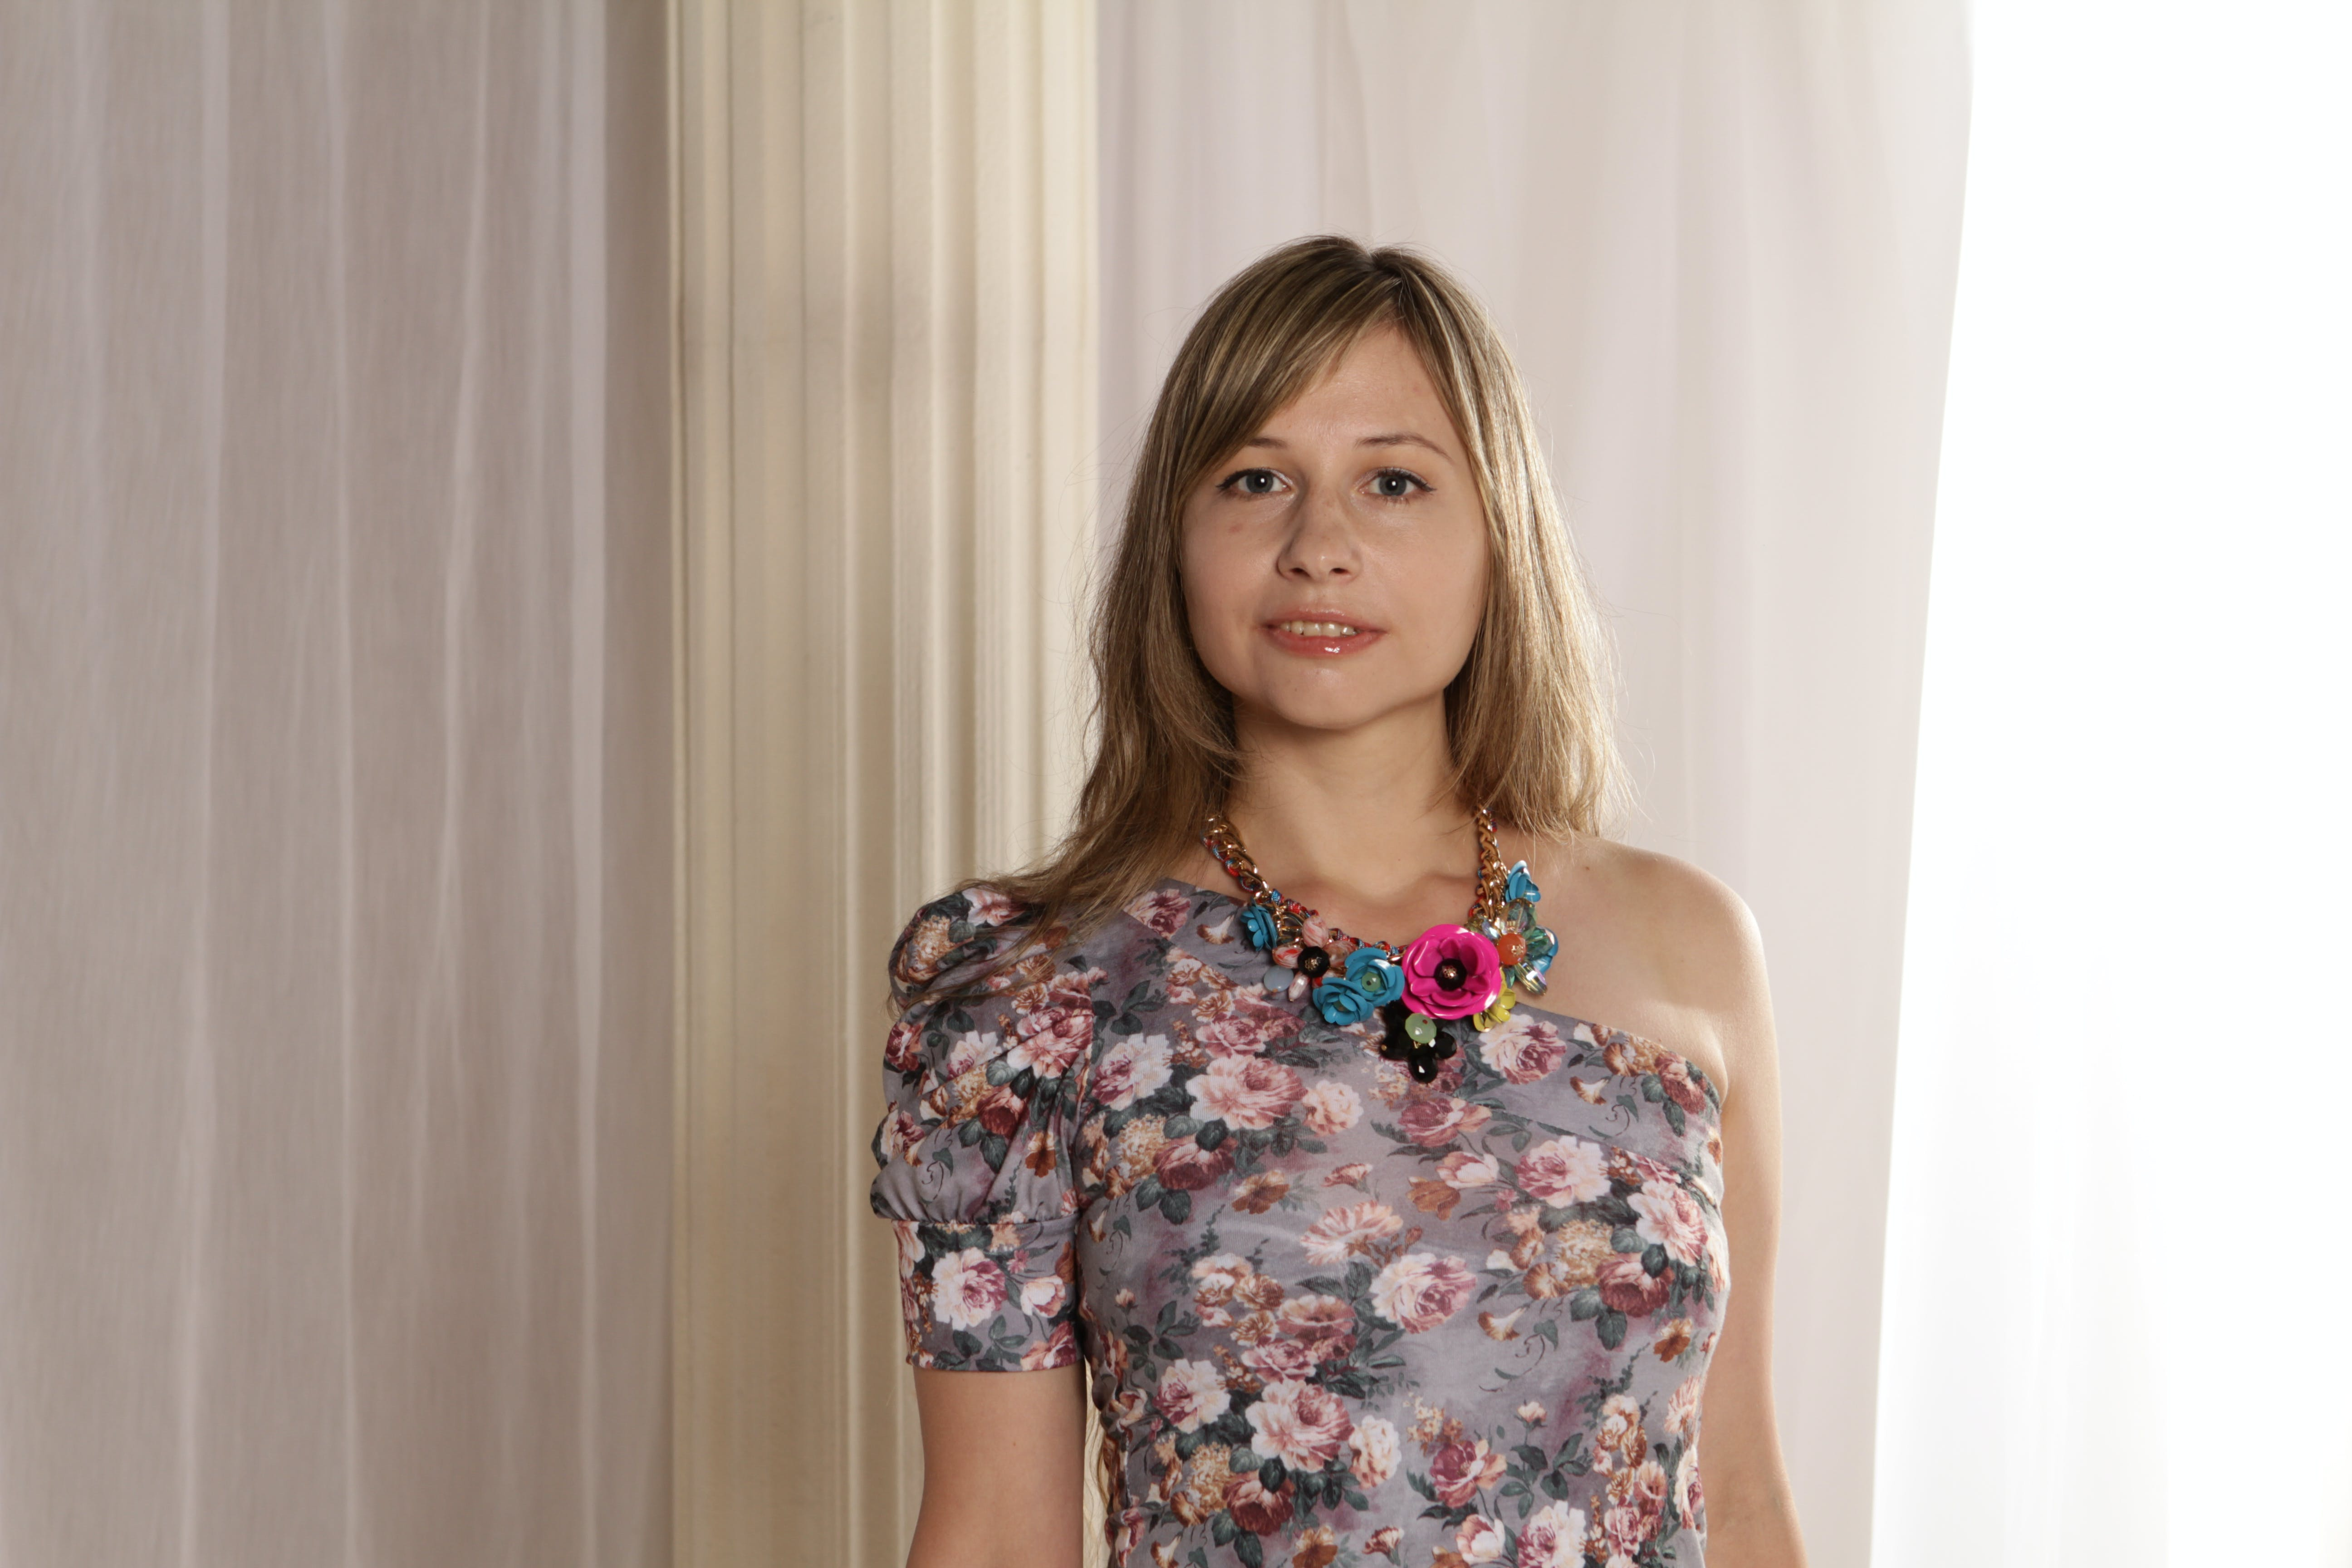 Woman Wearing Grey and Multicolored Floral Single-shoulder Top Against Beige Curtains